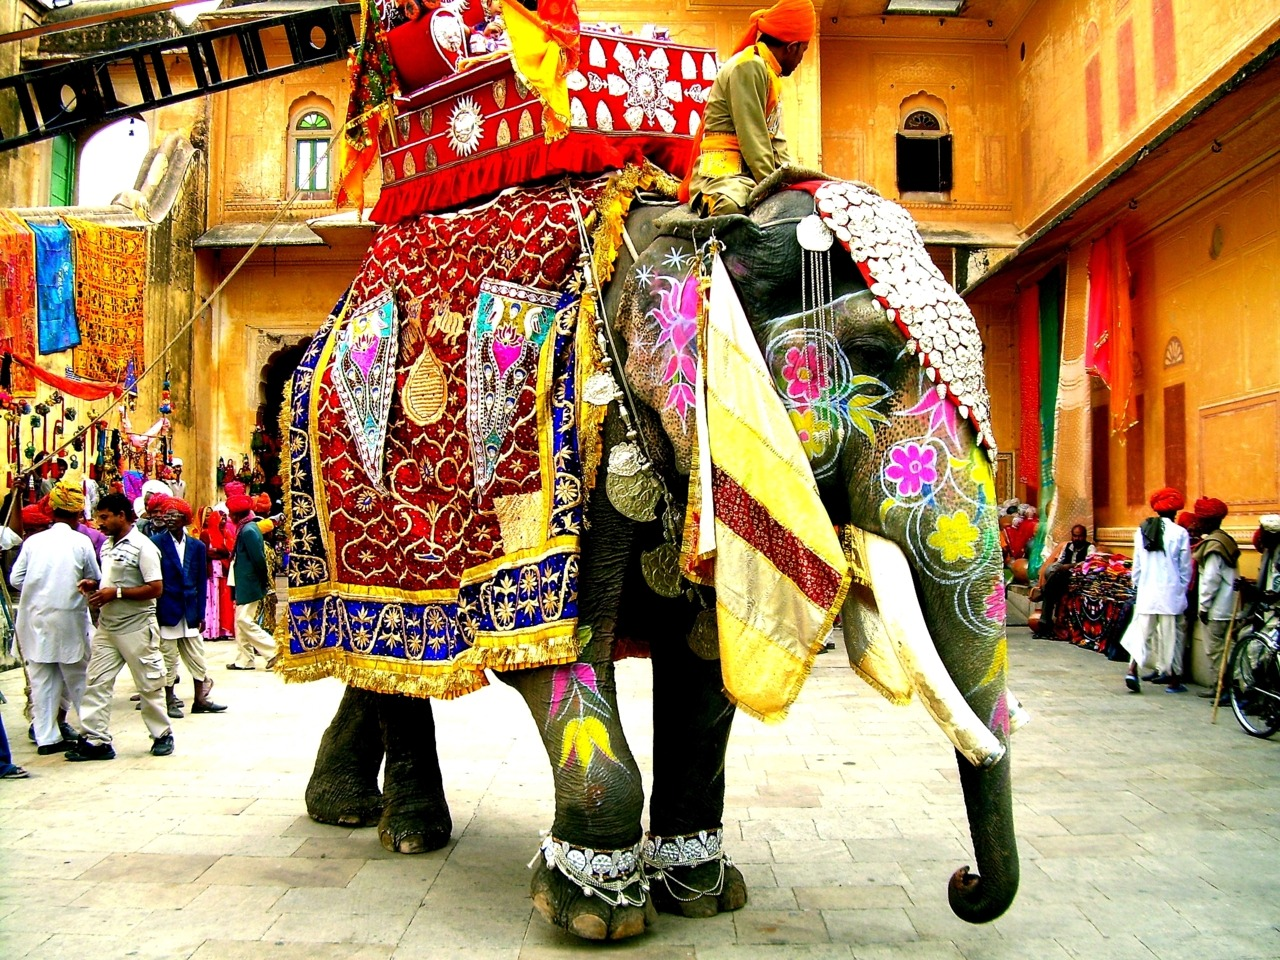 somewhereintheworldtoday:  In India even the elephants put on their best clothes Indian festivals such as Teej and Holi see the most magnificent parades of elaborately decorated elephants.